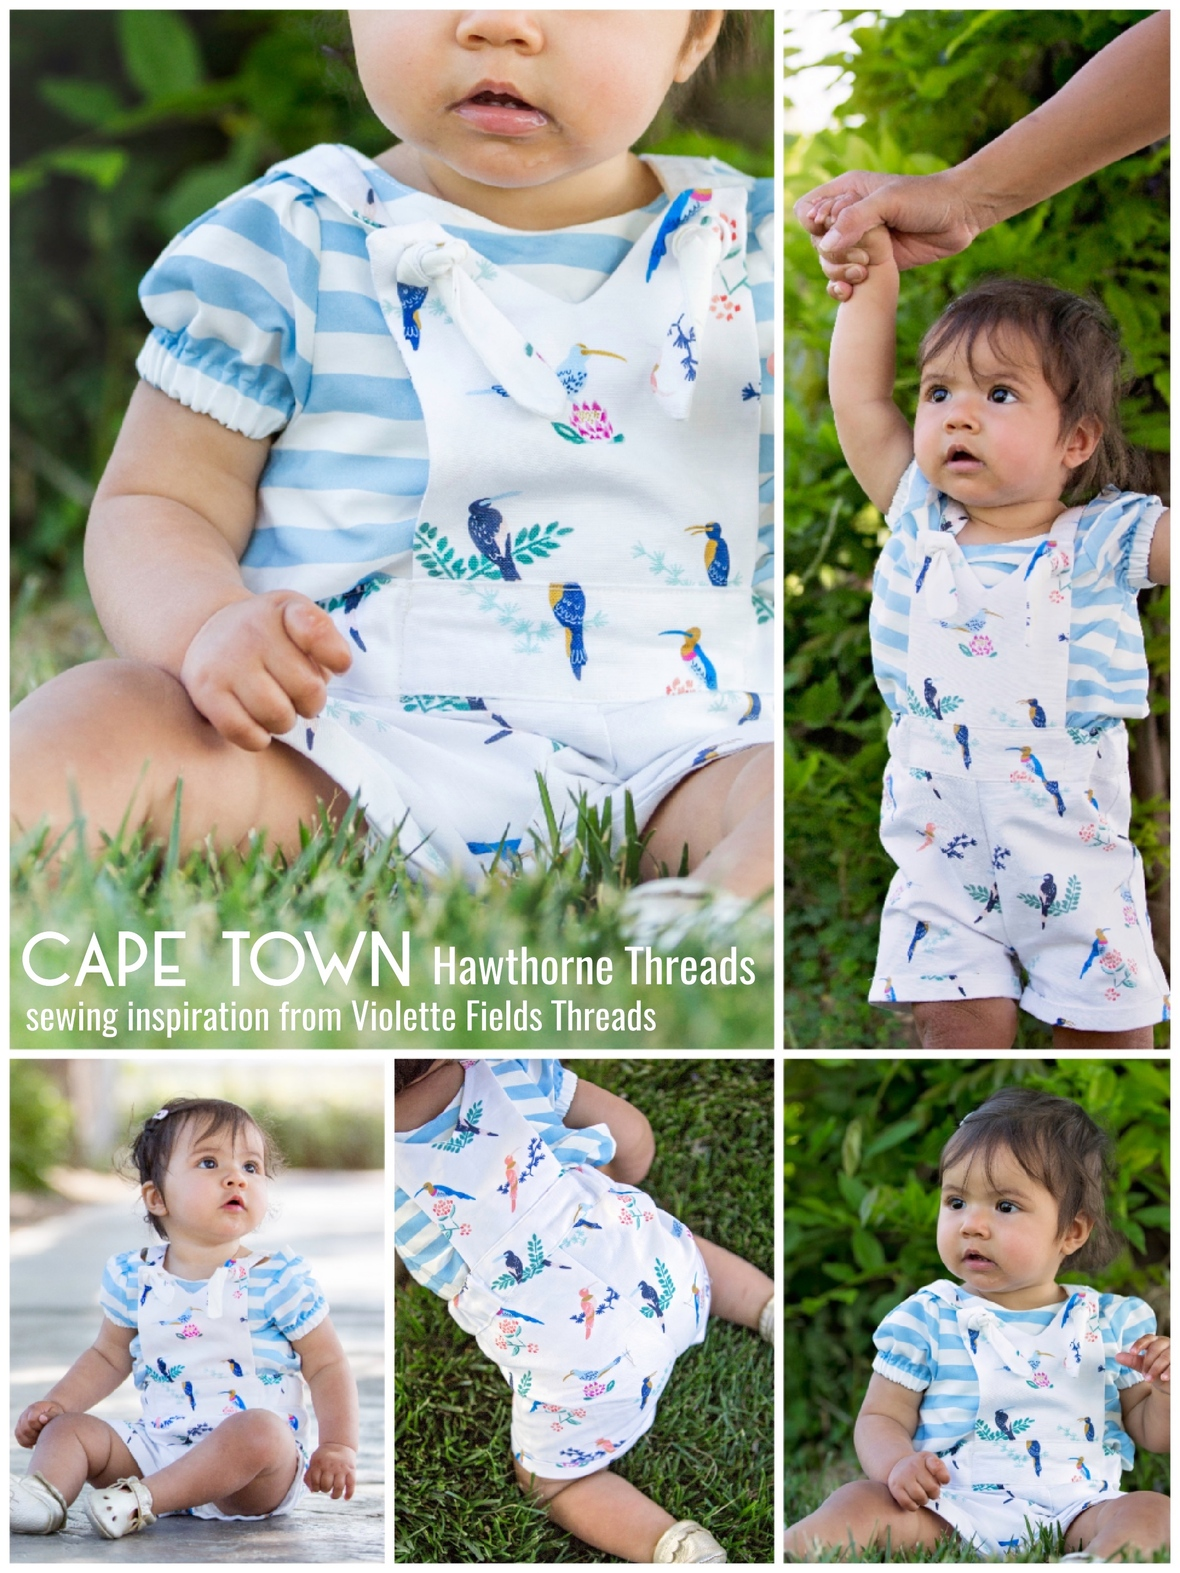 Hawthorne Cape Town Fabric Overalls by Violette Fields Threads